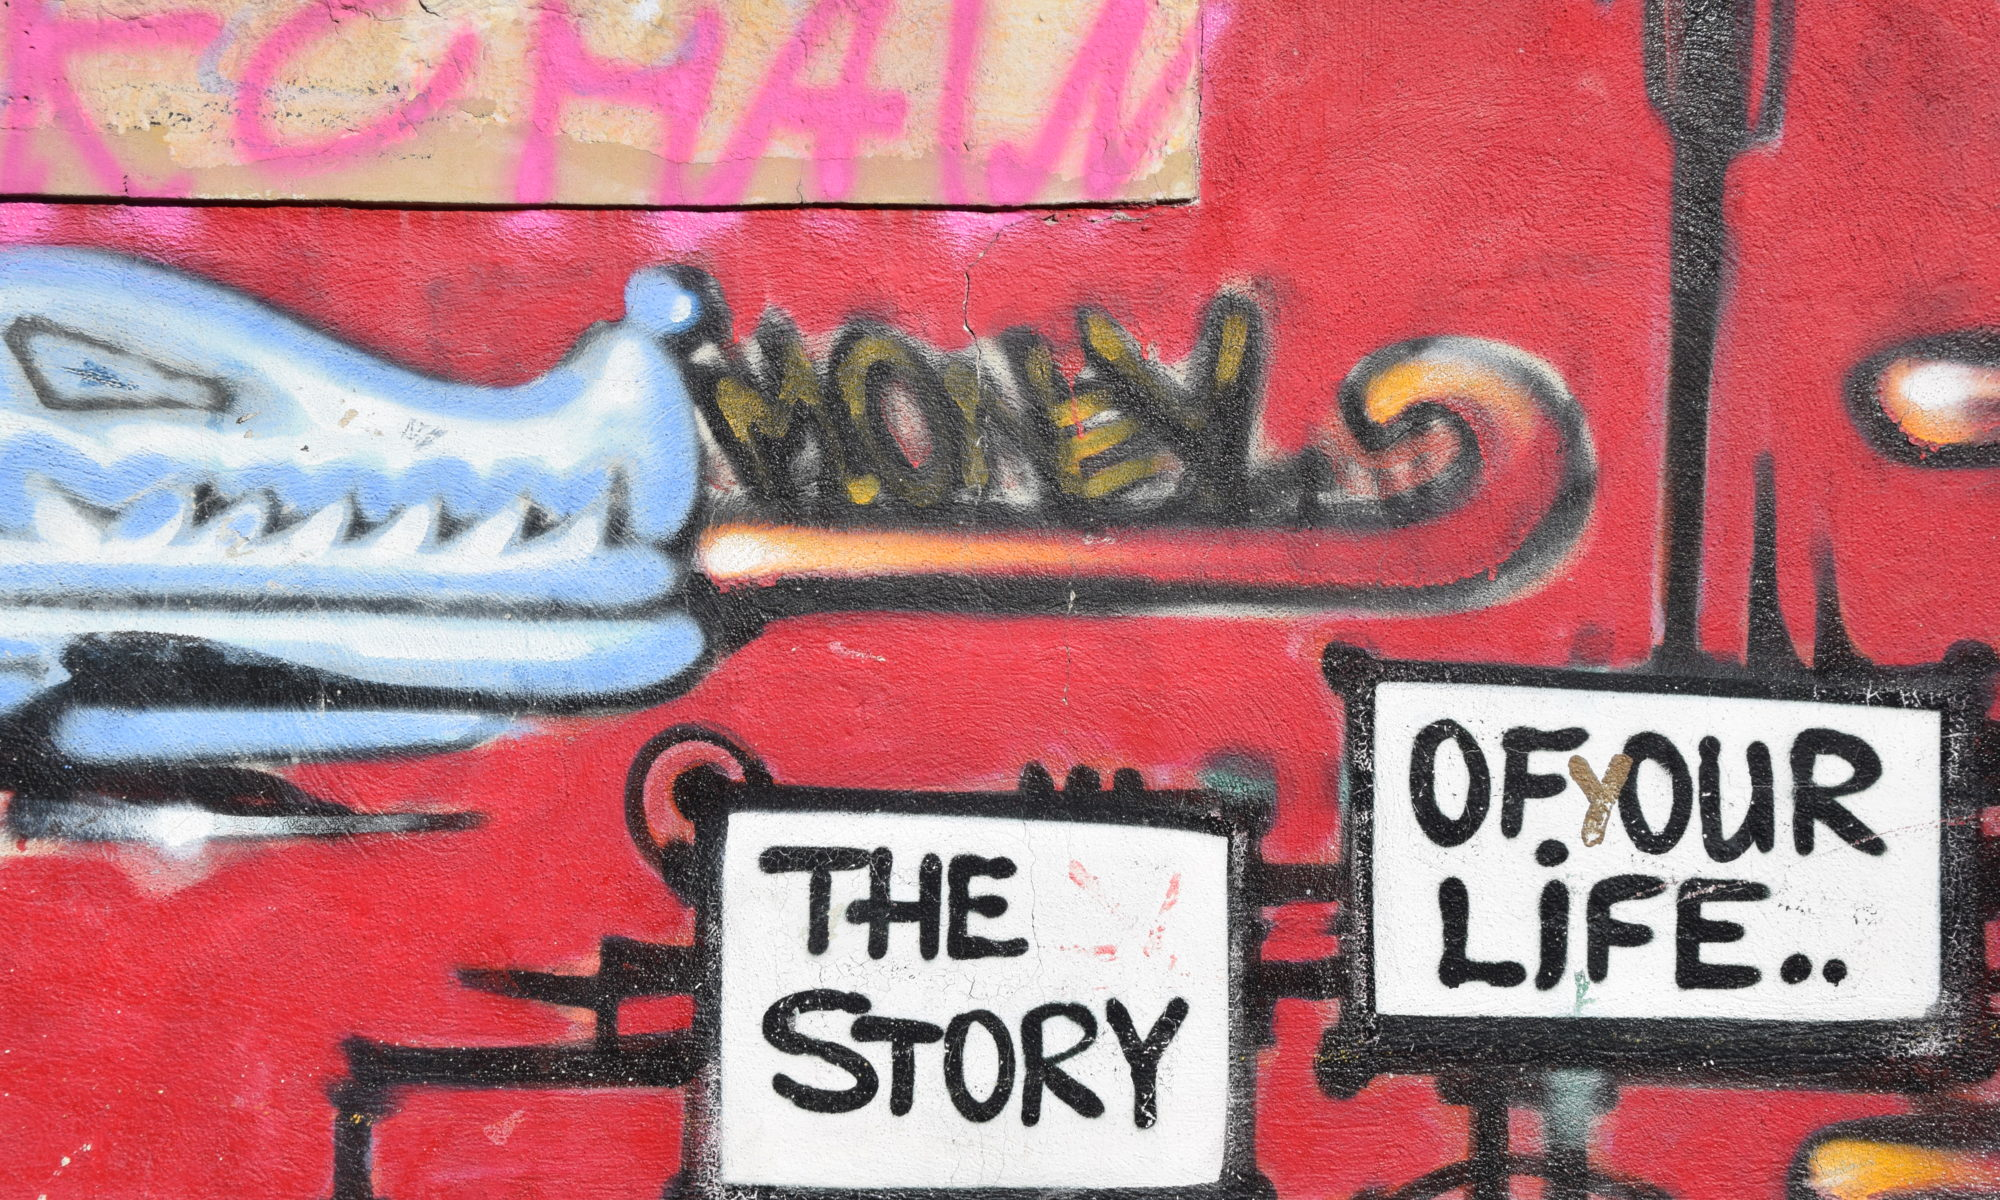 Streetart: Story of your life